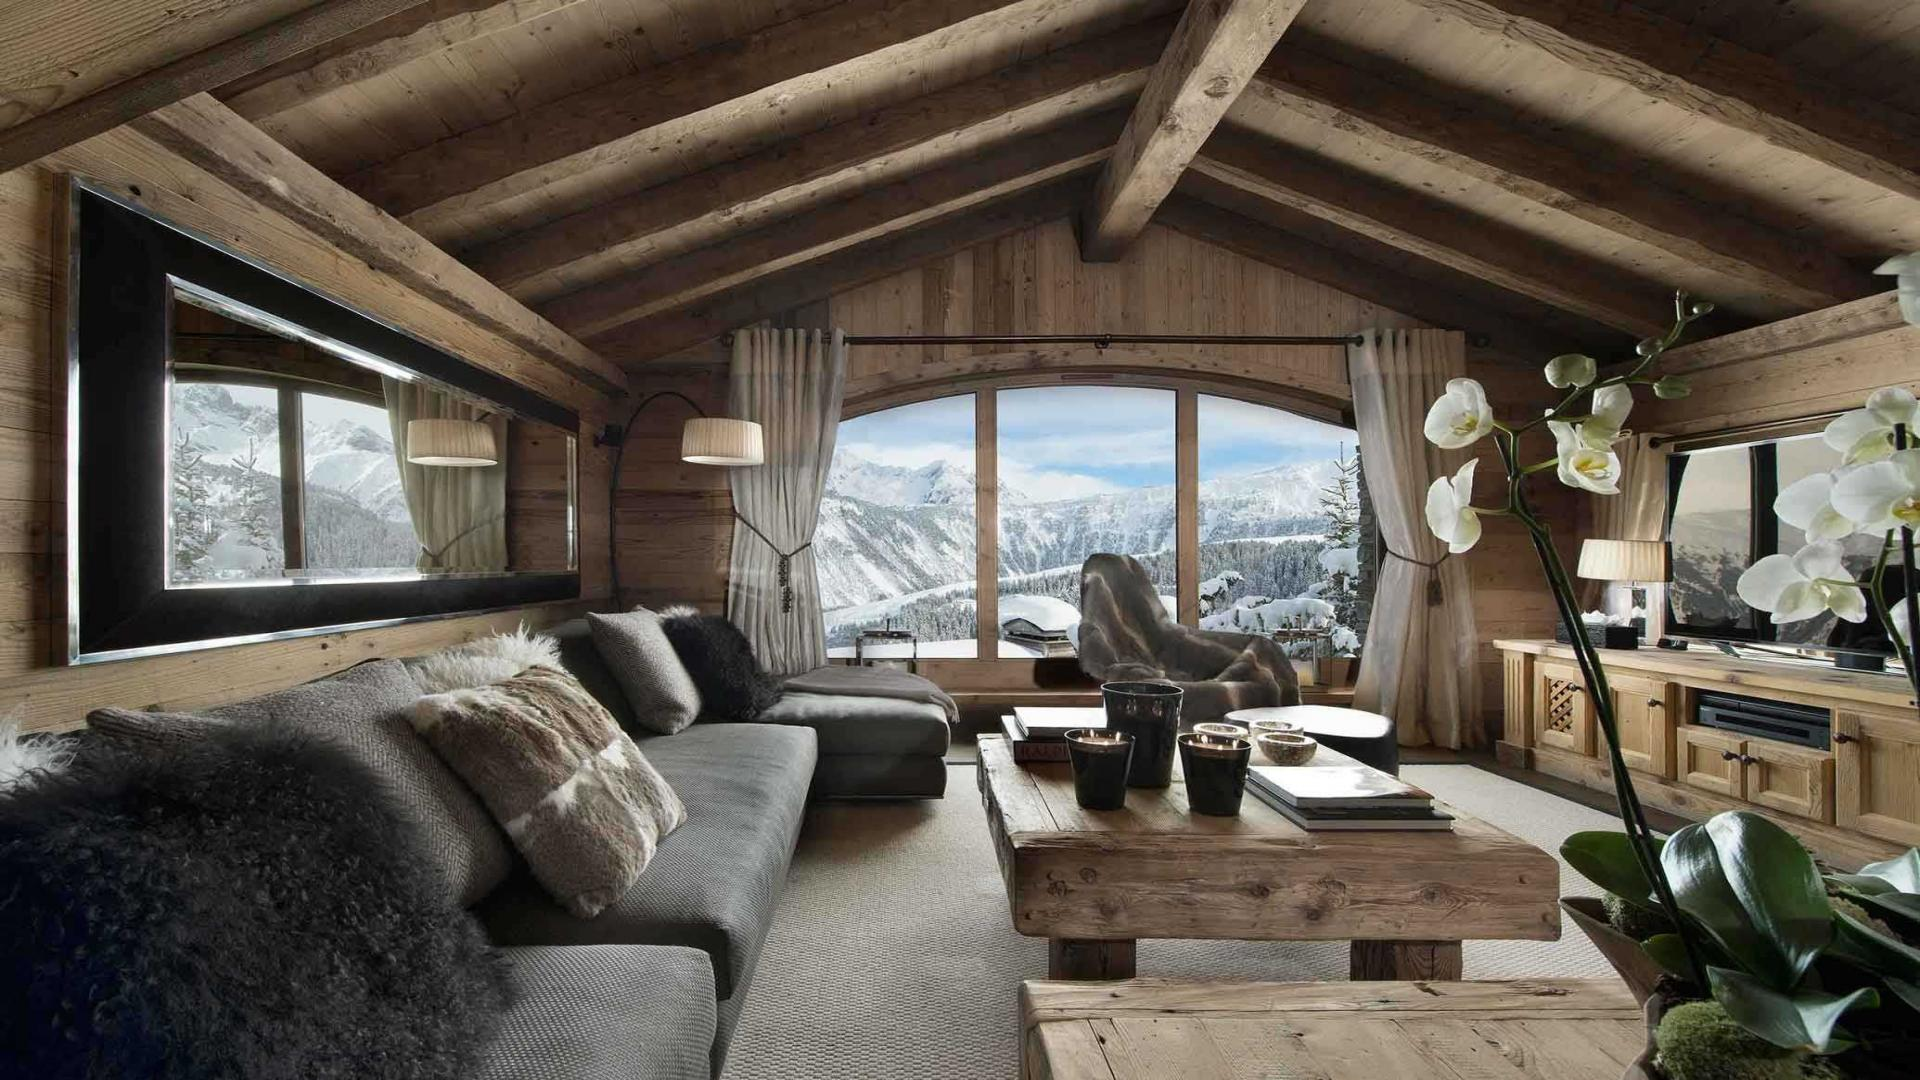 24 hours in courchevel connoisseur 39 s for Salon de luxe moderne